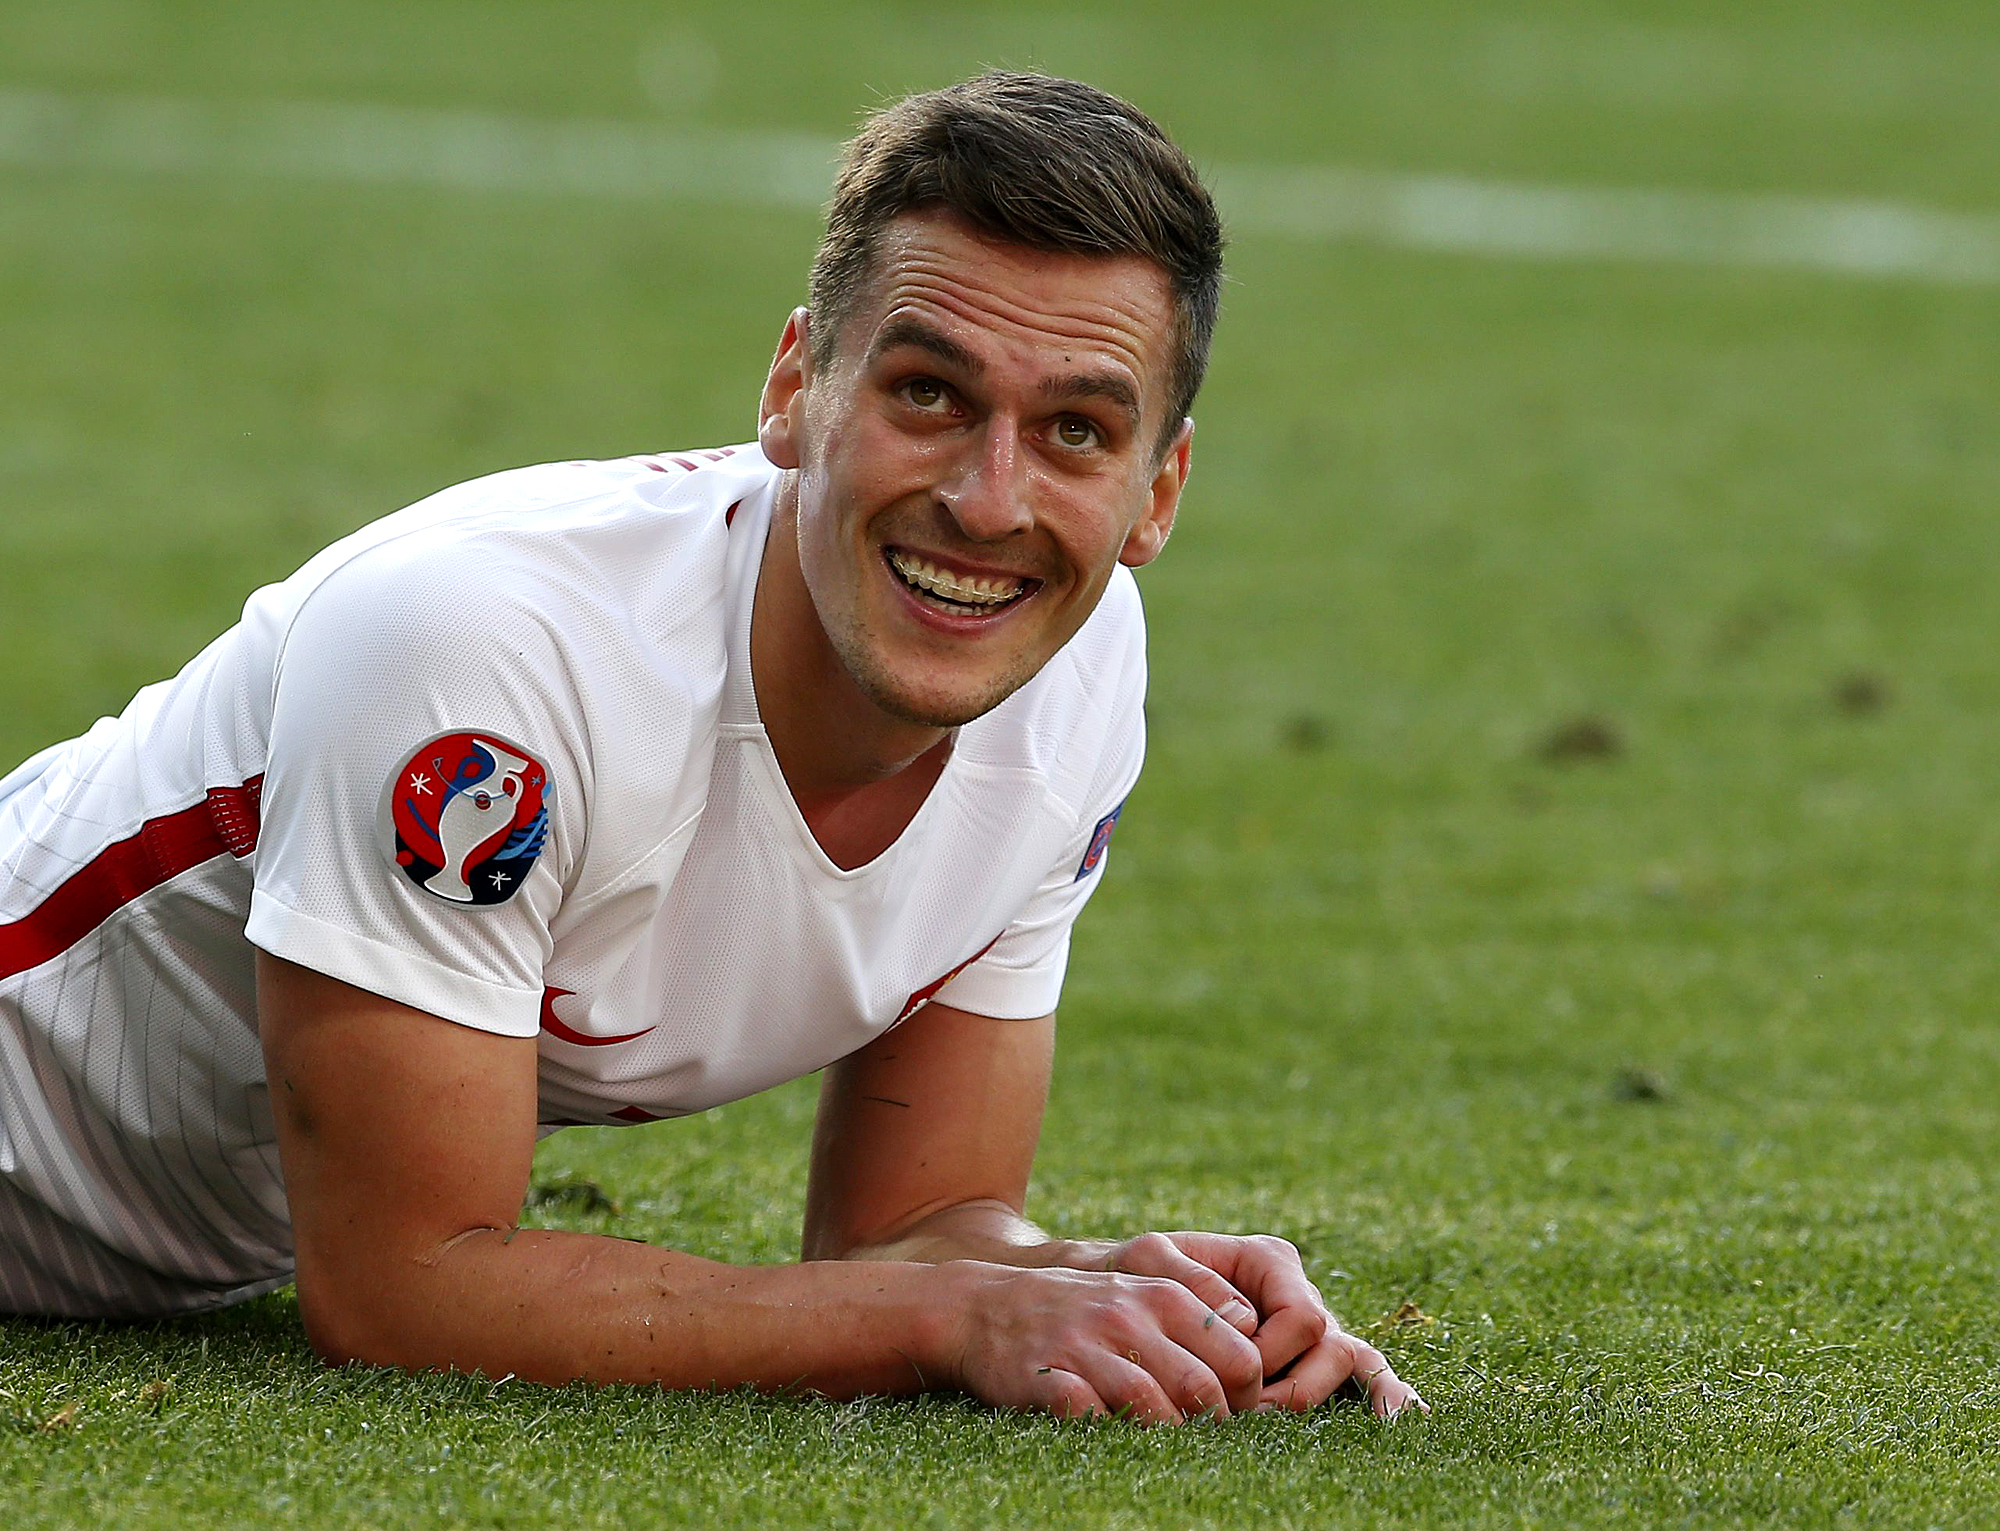 39 Photos of the 2018 World Cup's Hottest Soccer Players (a.k.a. Our Imaginary Boyfriends)